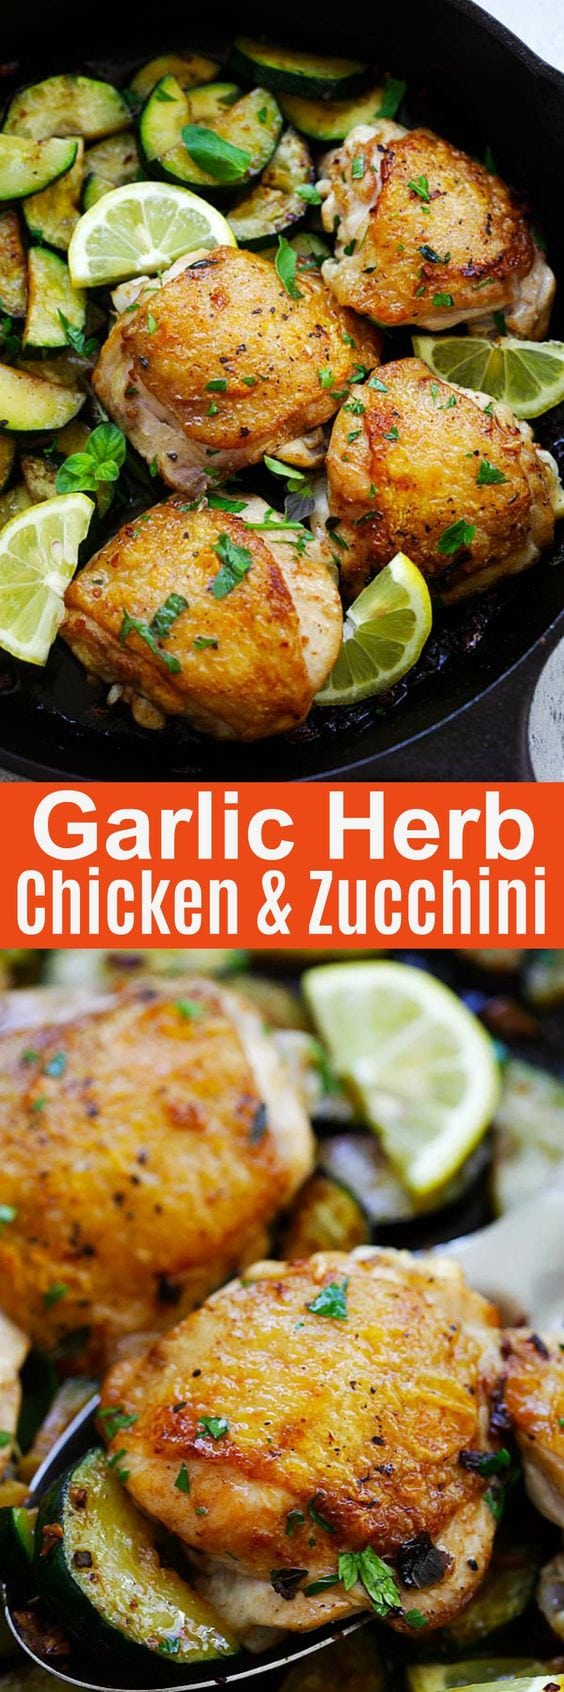 Garlic Herb Chicken and Zucchini - a quick and easy one-pot recipe with delicious and flavorful chicken and zucchini cooked with garlic, oregano, thyme, white wine and parsley | rasamalaysia.com